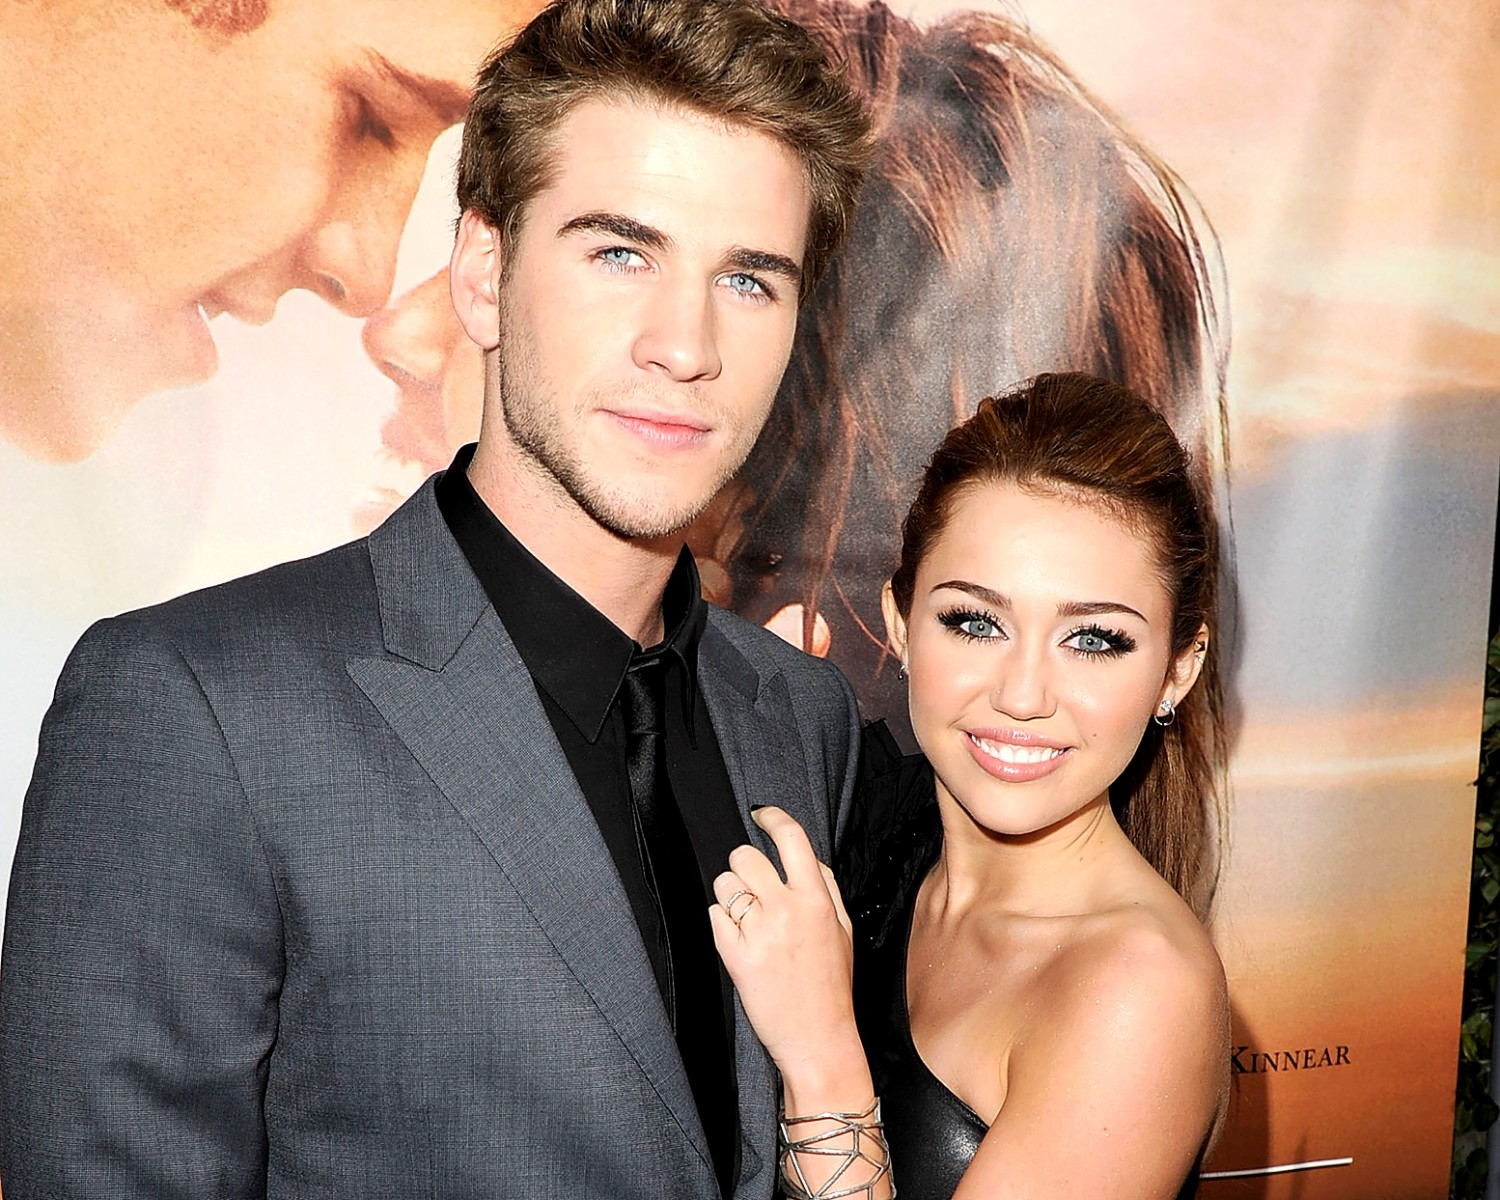 Last Song Wedding.Miley Cyrus And Liam Hemsworth S The Last Song Surged In